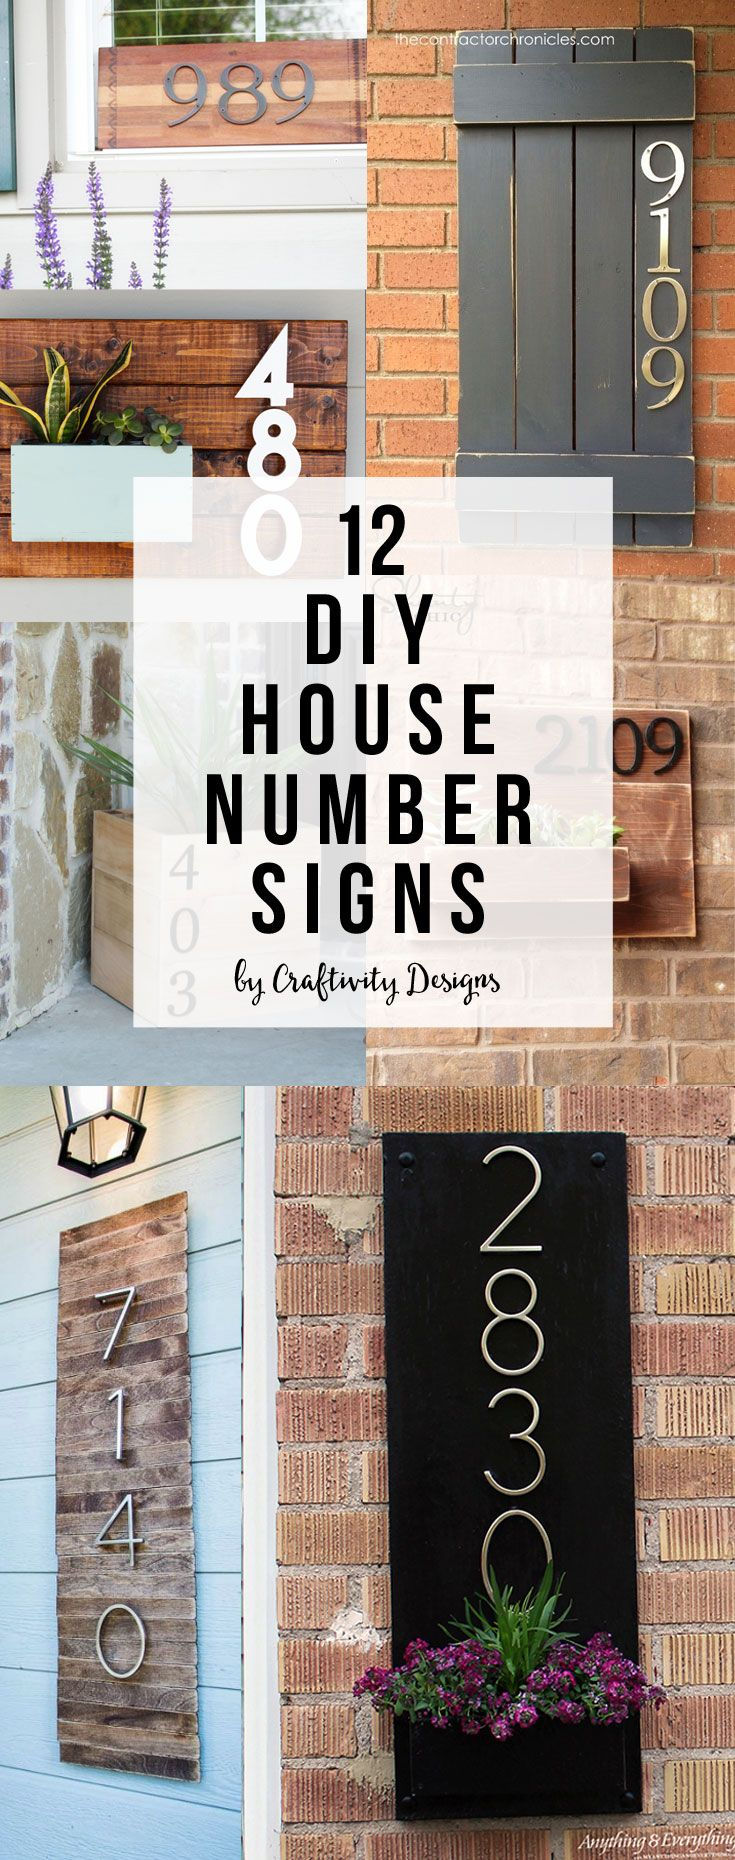 How To Make A Diy House Number Sign In Minutes House Numbers